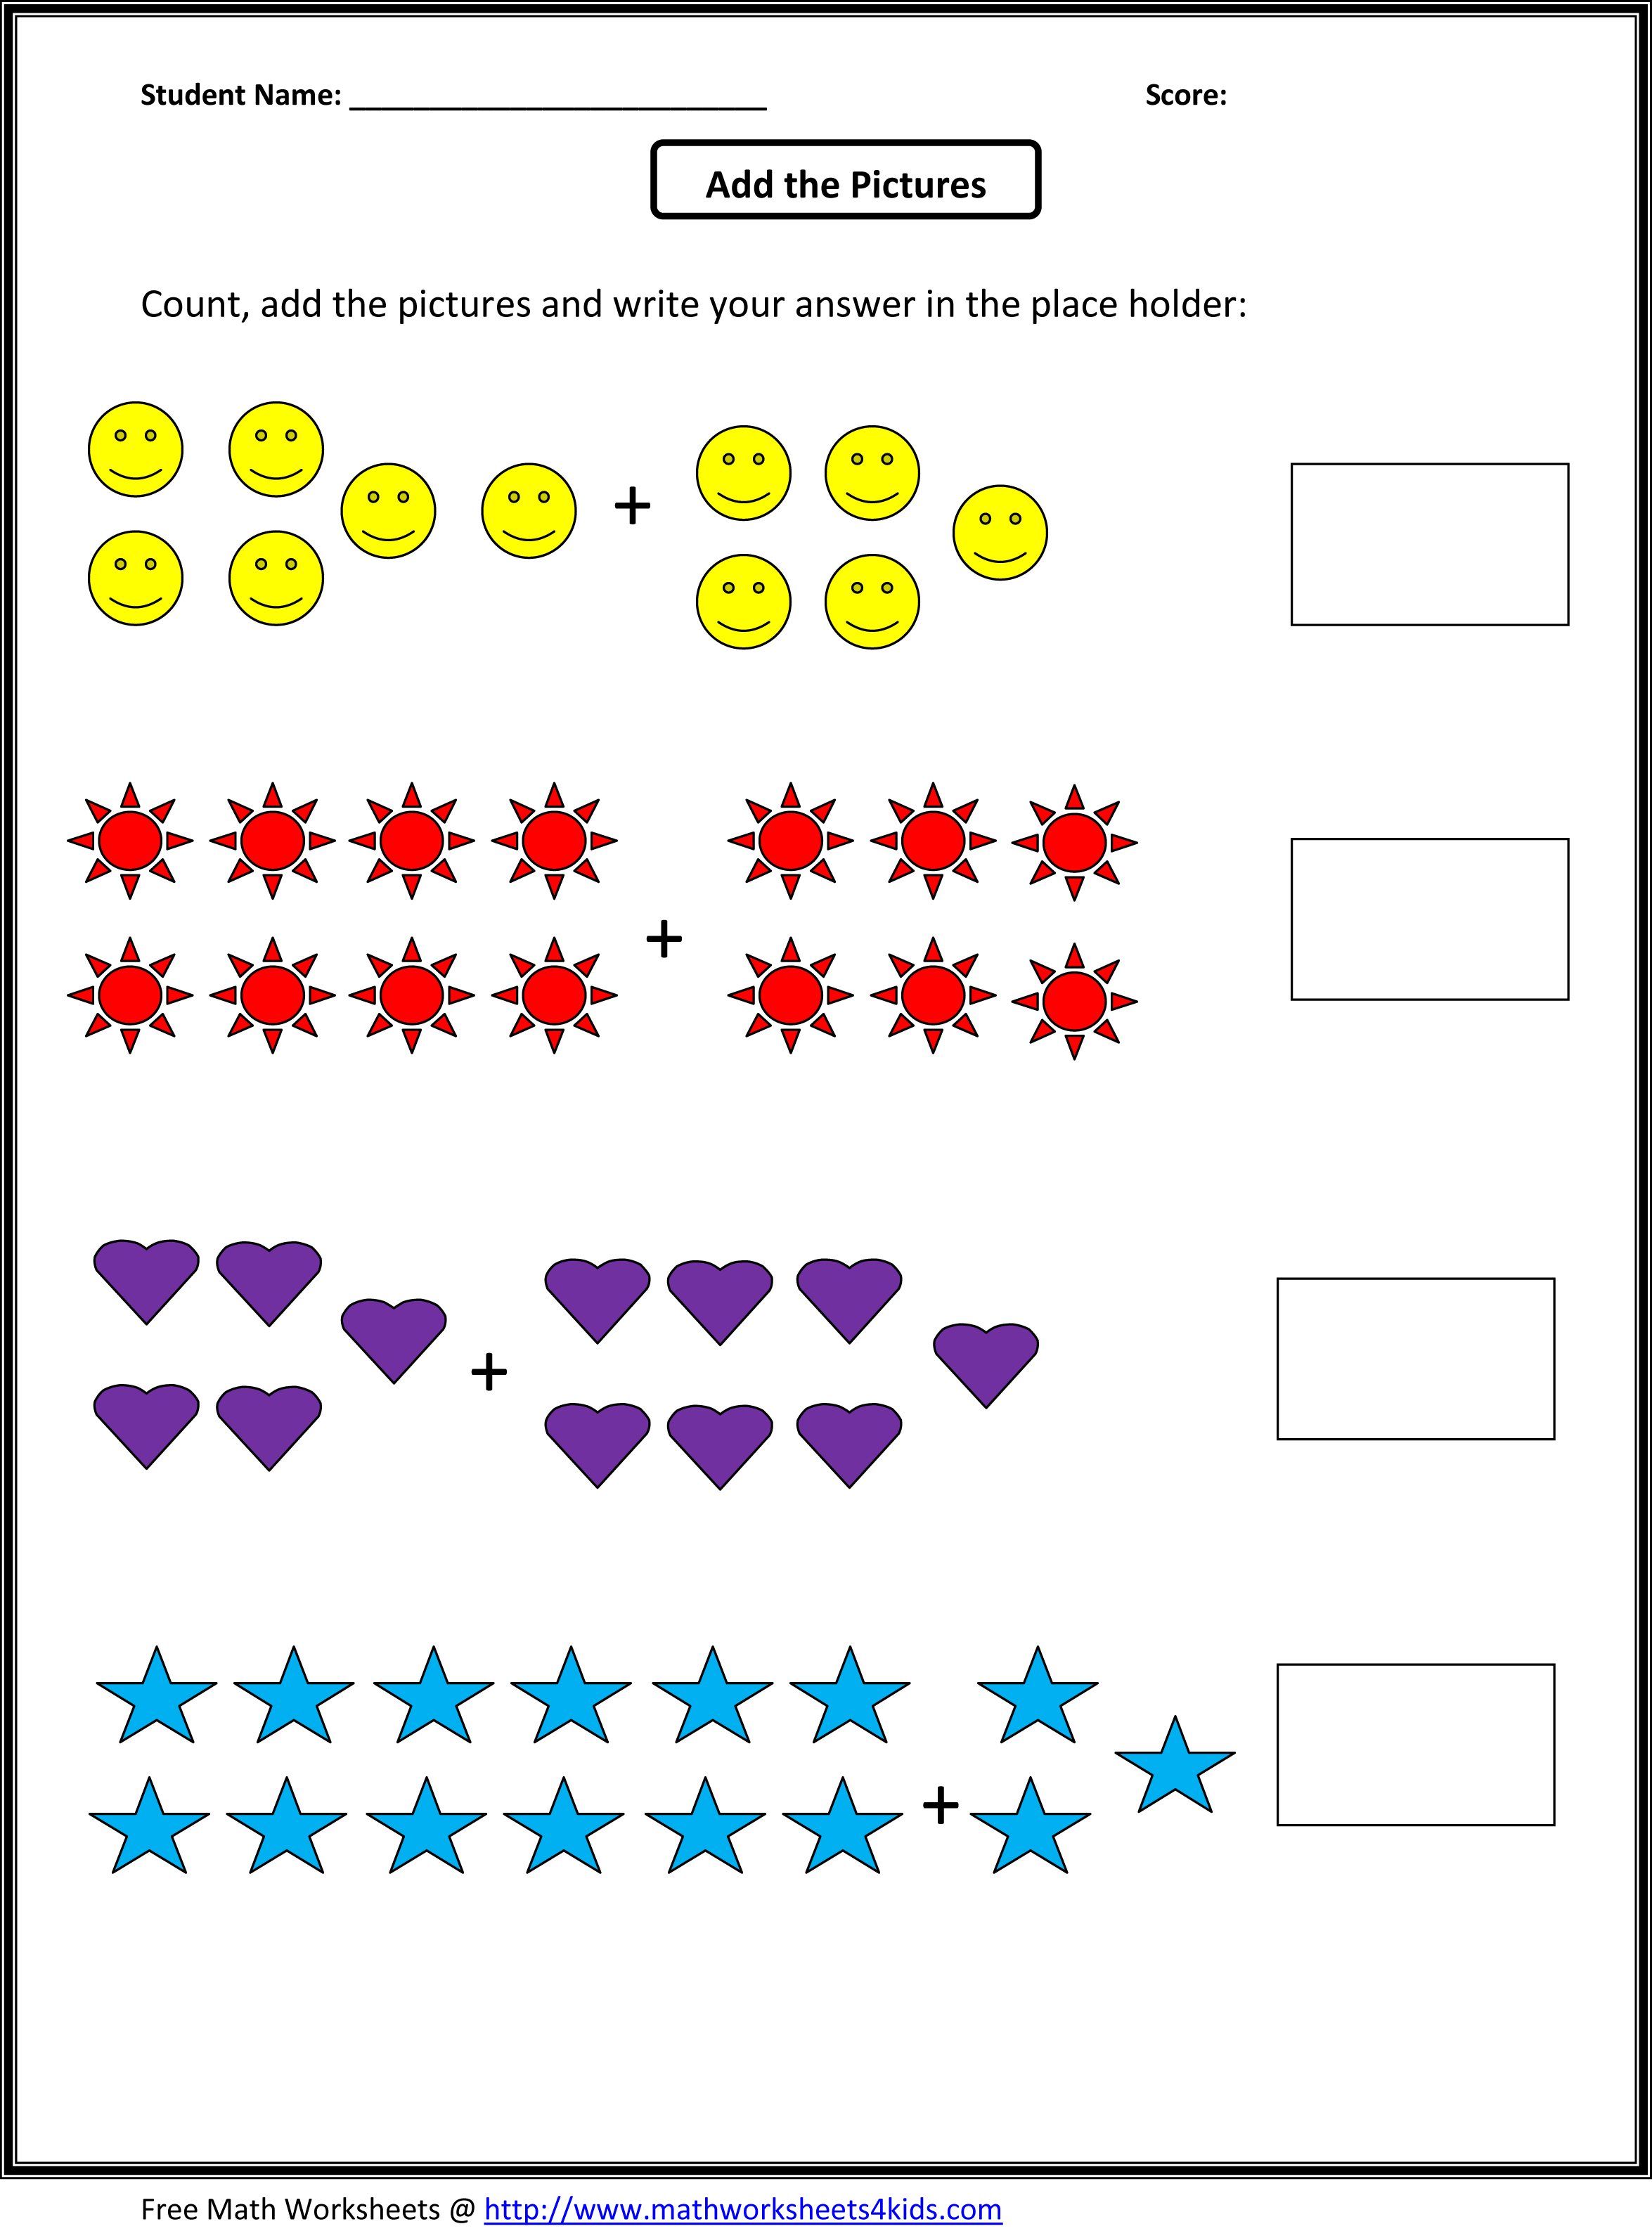 Proatmealus  Personable Grade  Maths Worksheet  Reocurent With Gorgeous Math Worksheets For St Grade Free  Reocurent With Beautiful Cancer Worksheet Also Social Studies Worksheet In Addition Preschool Nutrition Worksheets And Relationship Skills Worksheets As Well As What Should I Know About Respiration Worksheet Additionally Physics  Worksheets From Reocurentcom With Proatmealus  Gorgeous Grade  Maths Worksheet  Reocurent With Beautiful Math Worksheets For St Grade Free  Reocurent And Personable Cancer Worksheet Also Social Studies Worksheet In Addition Preschool Nutrition Worksheets From Reocurentcom